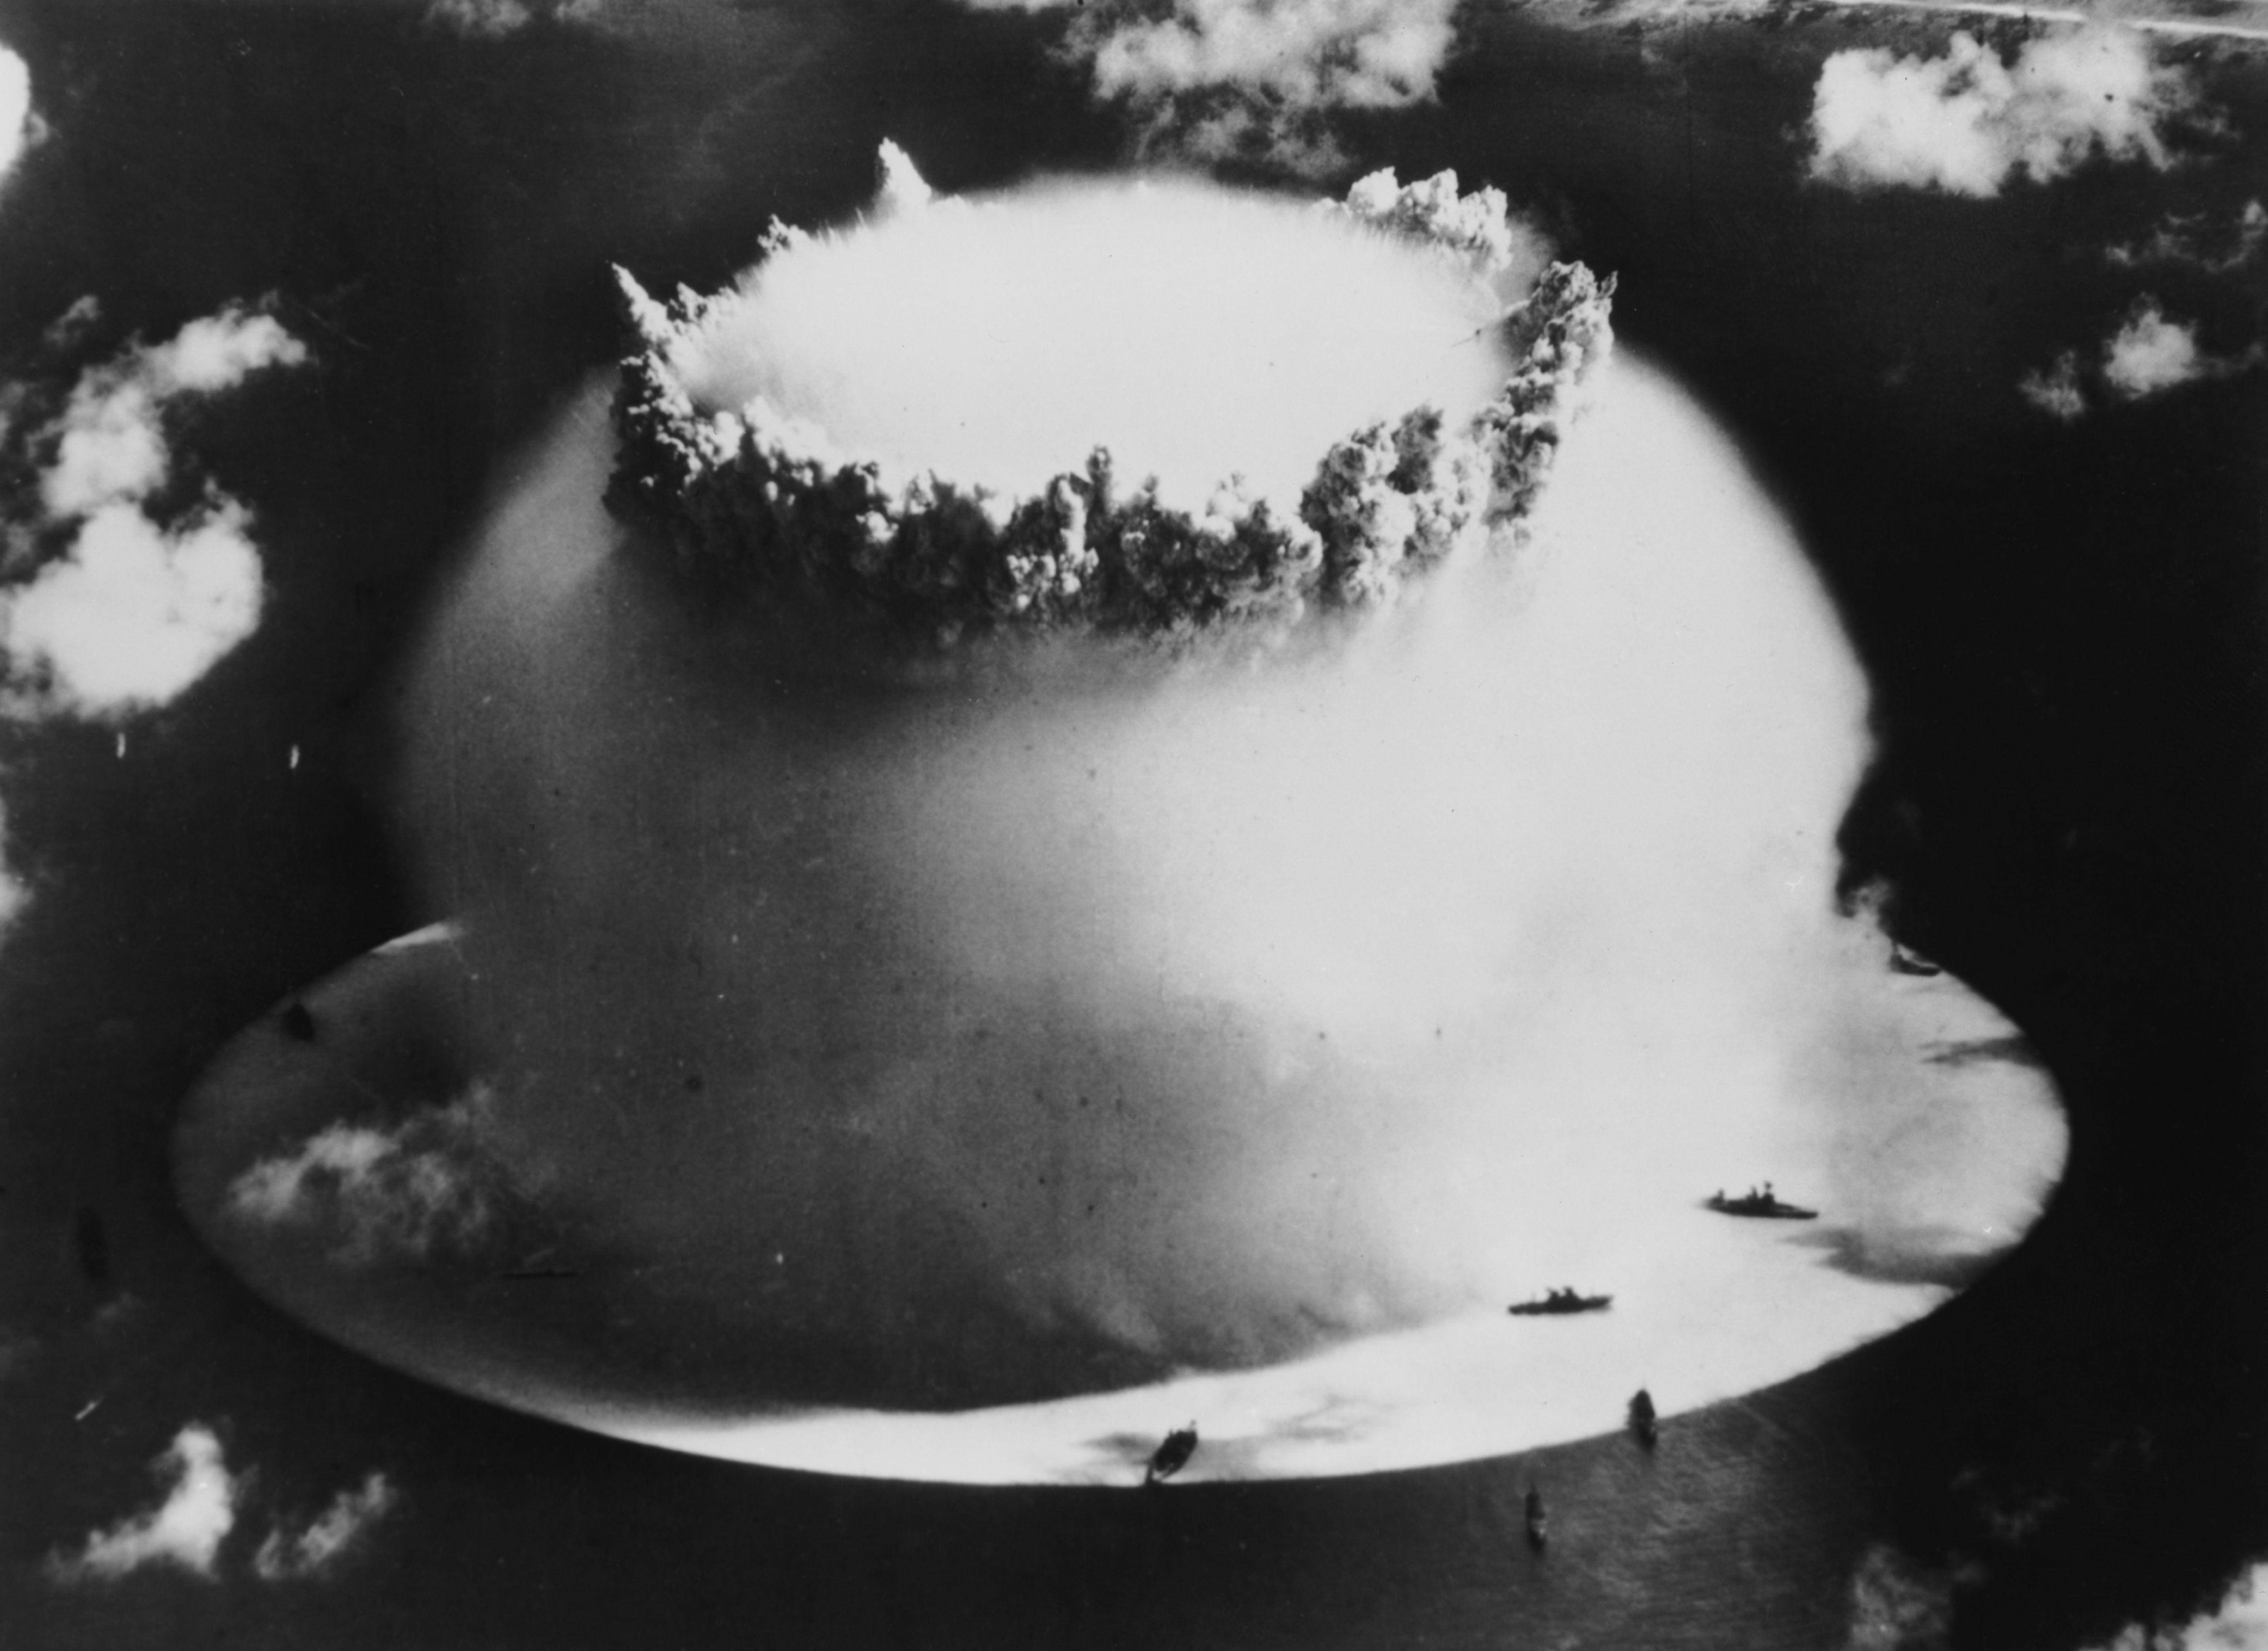 An atom bomb being exploded under water at Bikini Atoll in the Pacific Ocean.